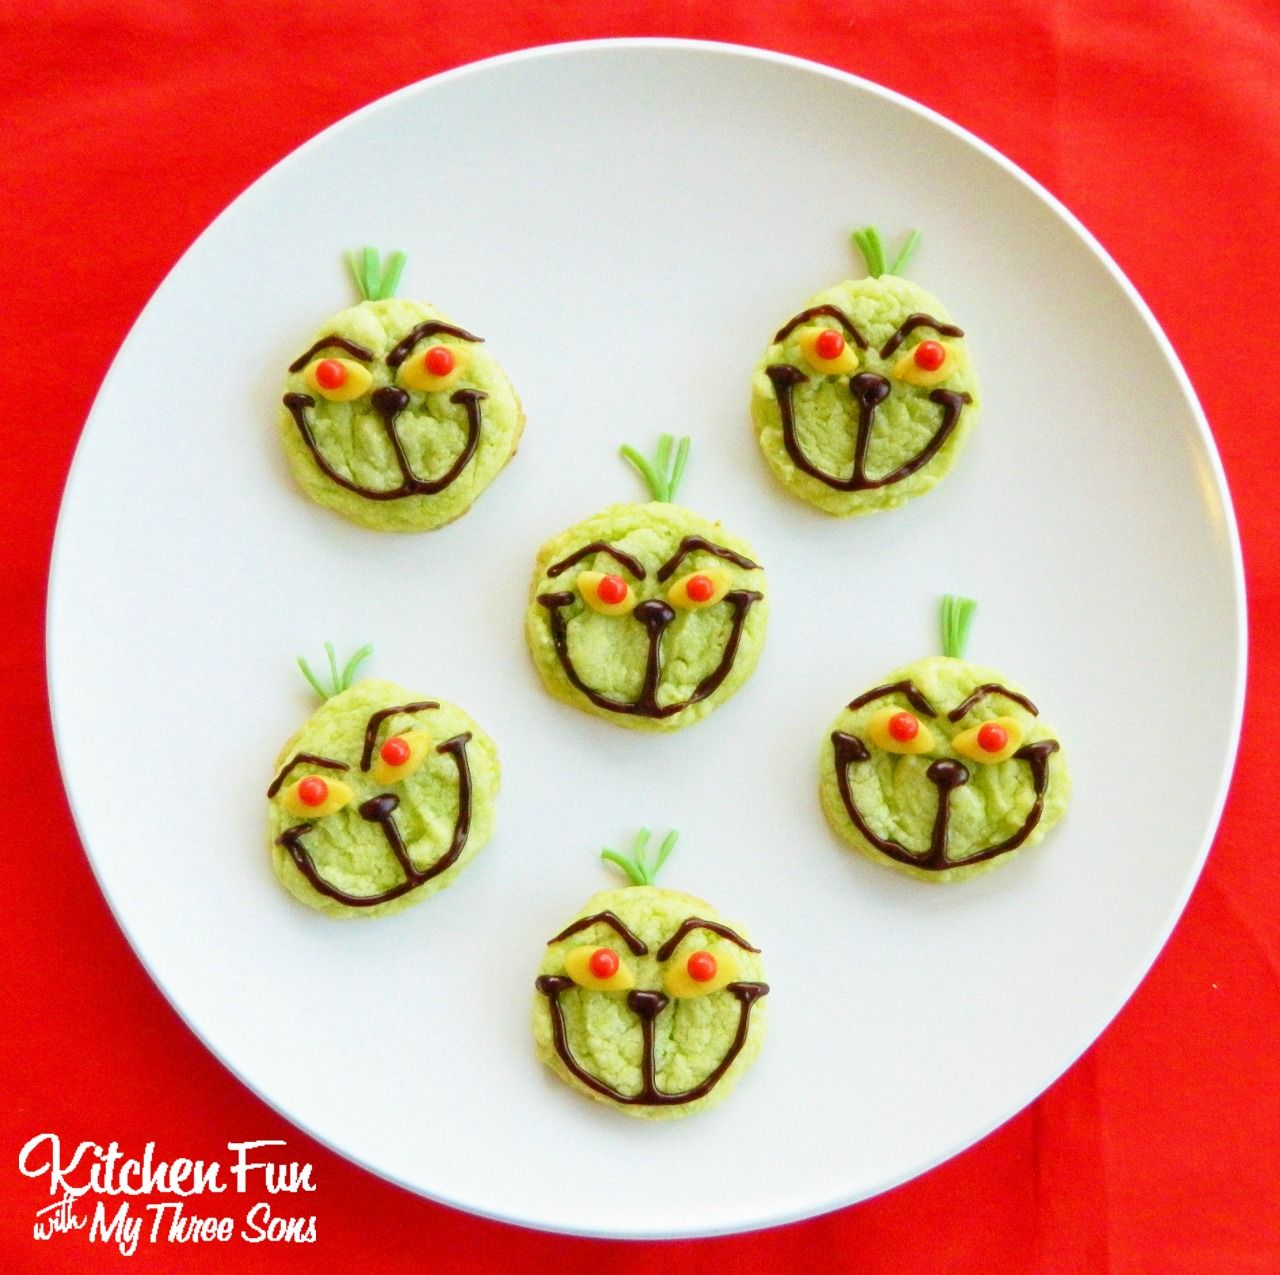 the grinch easy christmas cookies using pre made ingredients kitchenfunwithmy3sonscom - Easy Christmas Cookies For Kids